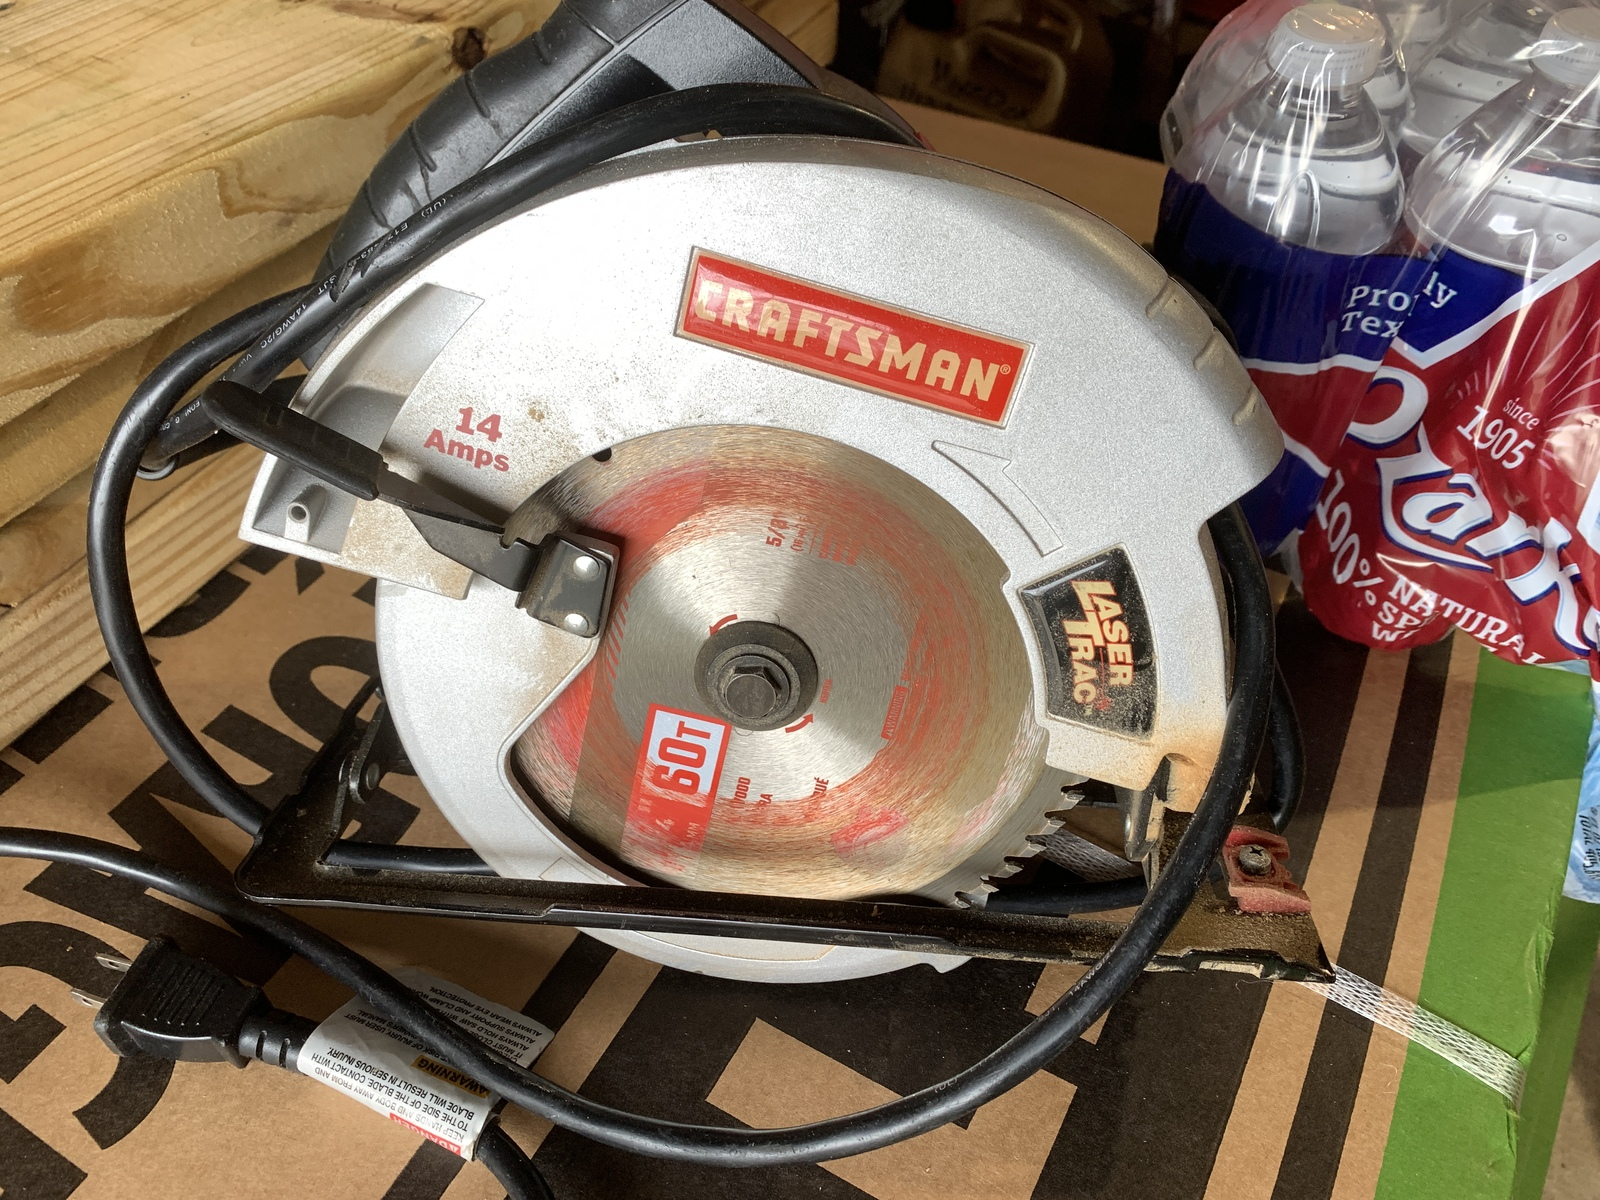 Craftsman 7 1/4 inch Circular Saw - $35.00